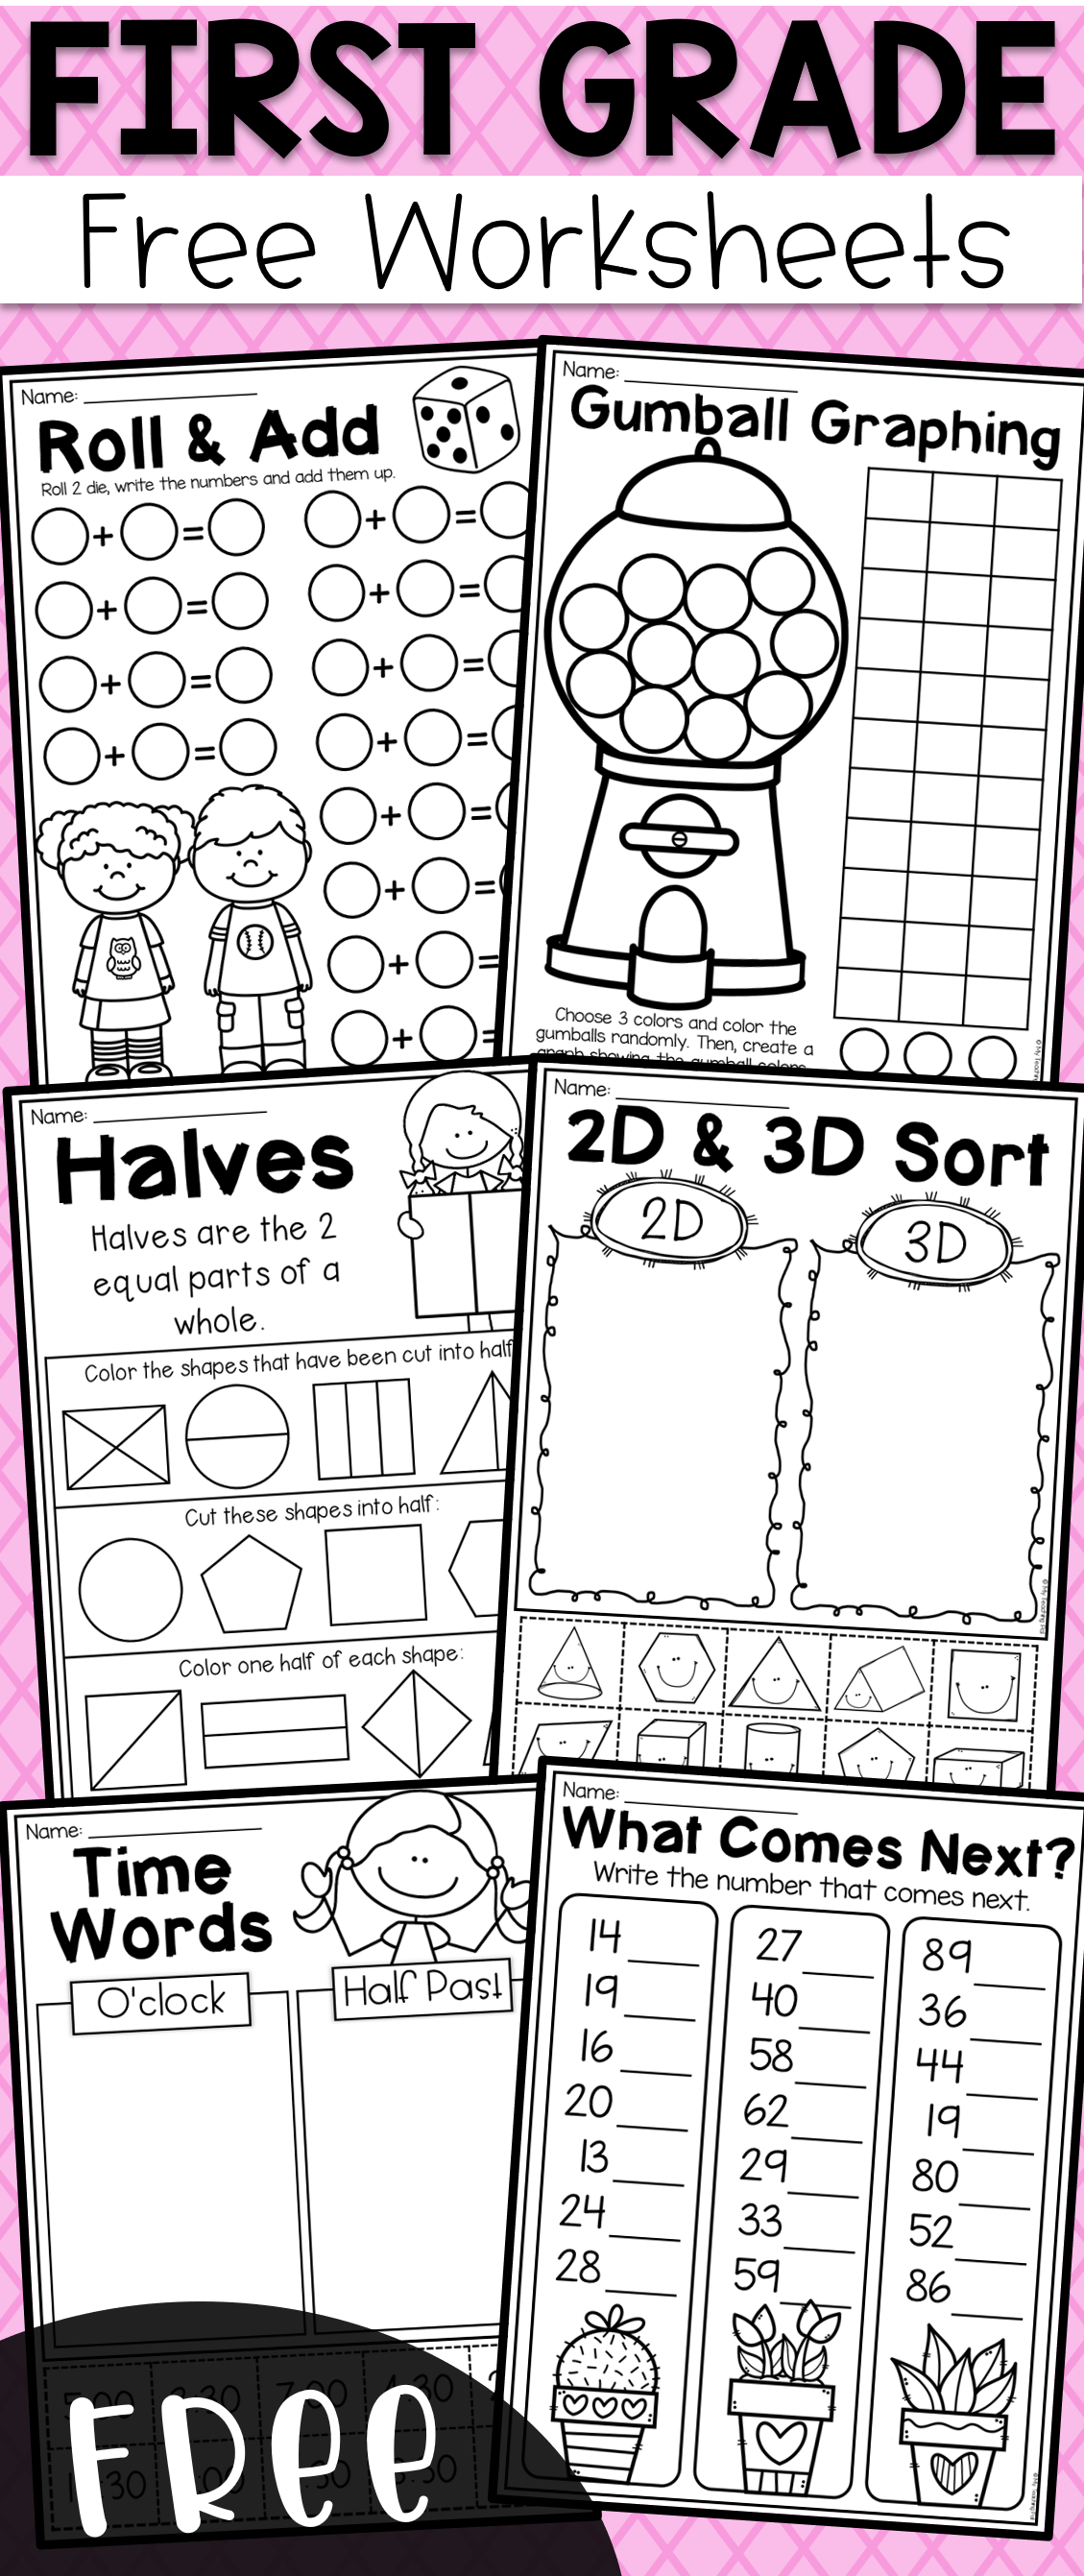 hight resolution of 9 Math Practice Worksheets - Free Templates